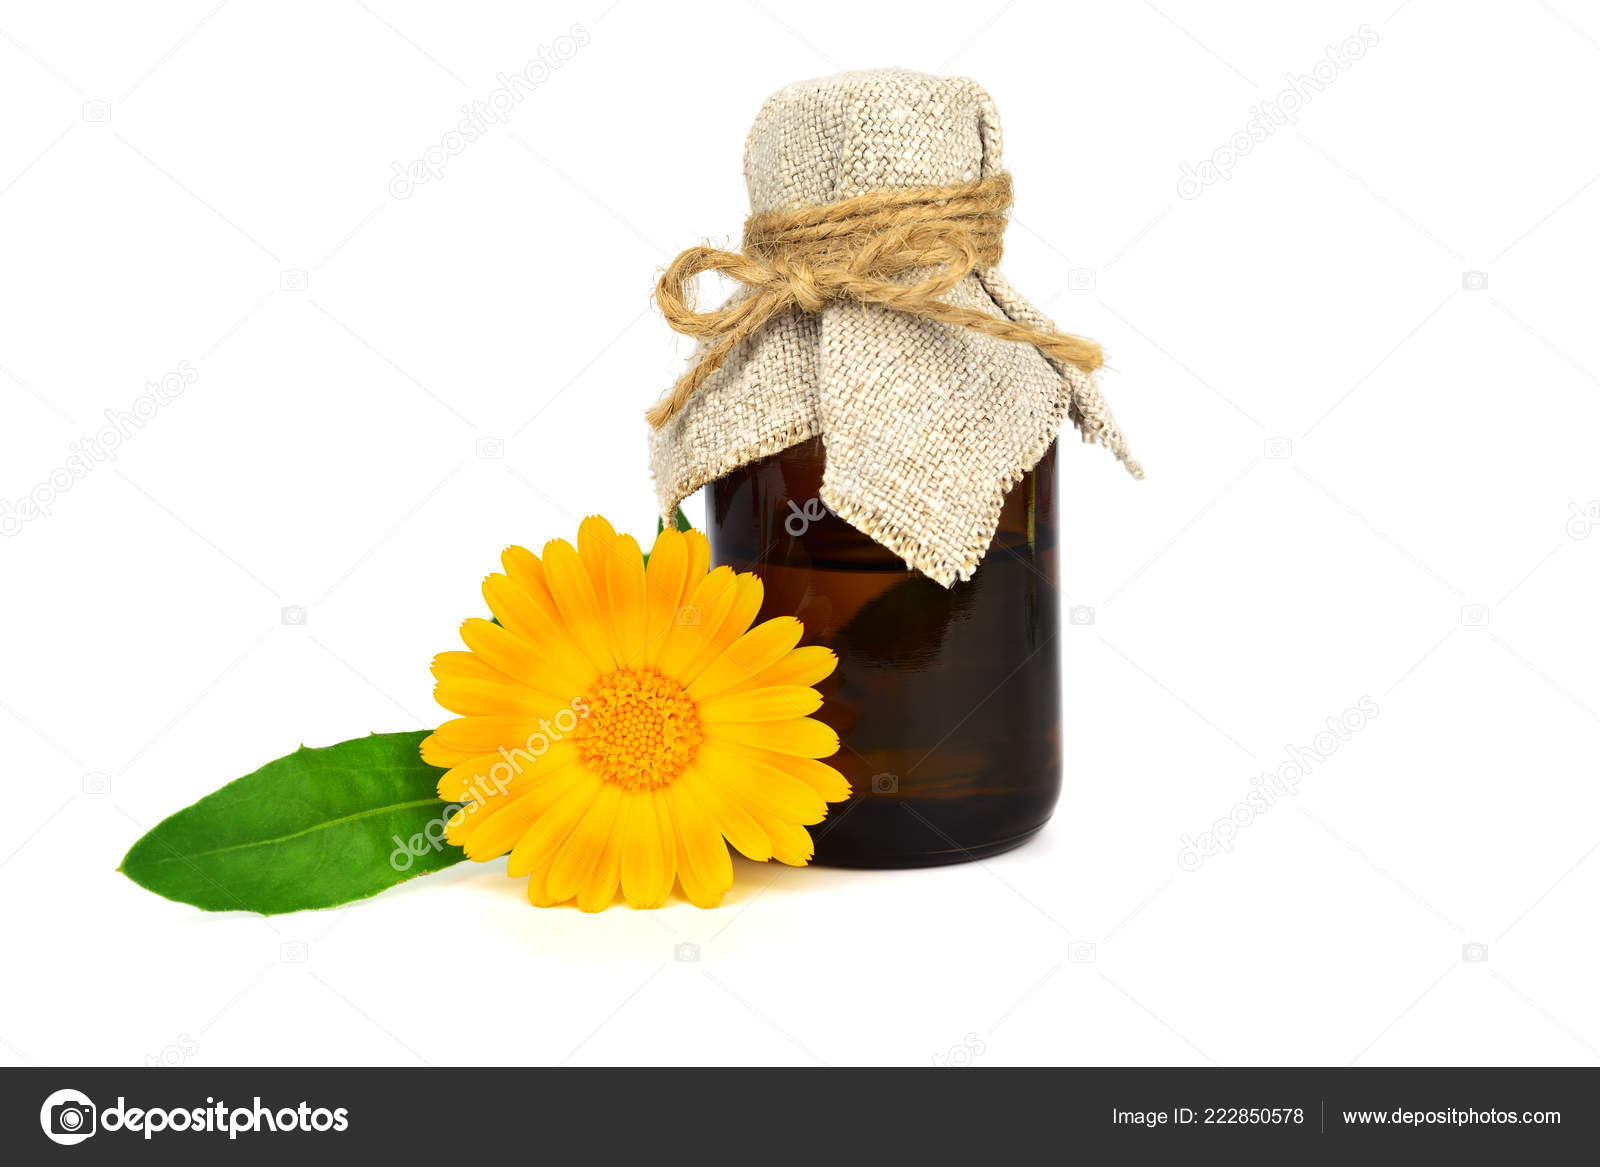 Common Marigold Flower (Calendula Officinalis) Tincture Extract or Essential Oil. Isolated on White Background. Also Ruddles, Pot or Scotch Marigold.